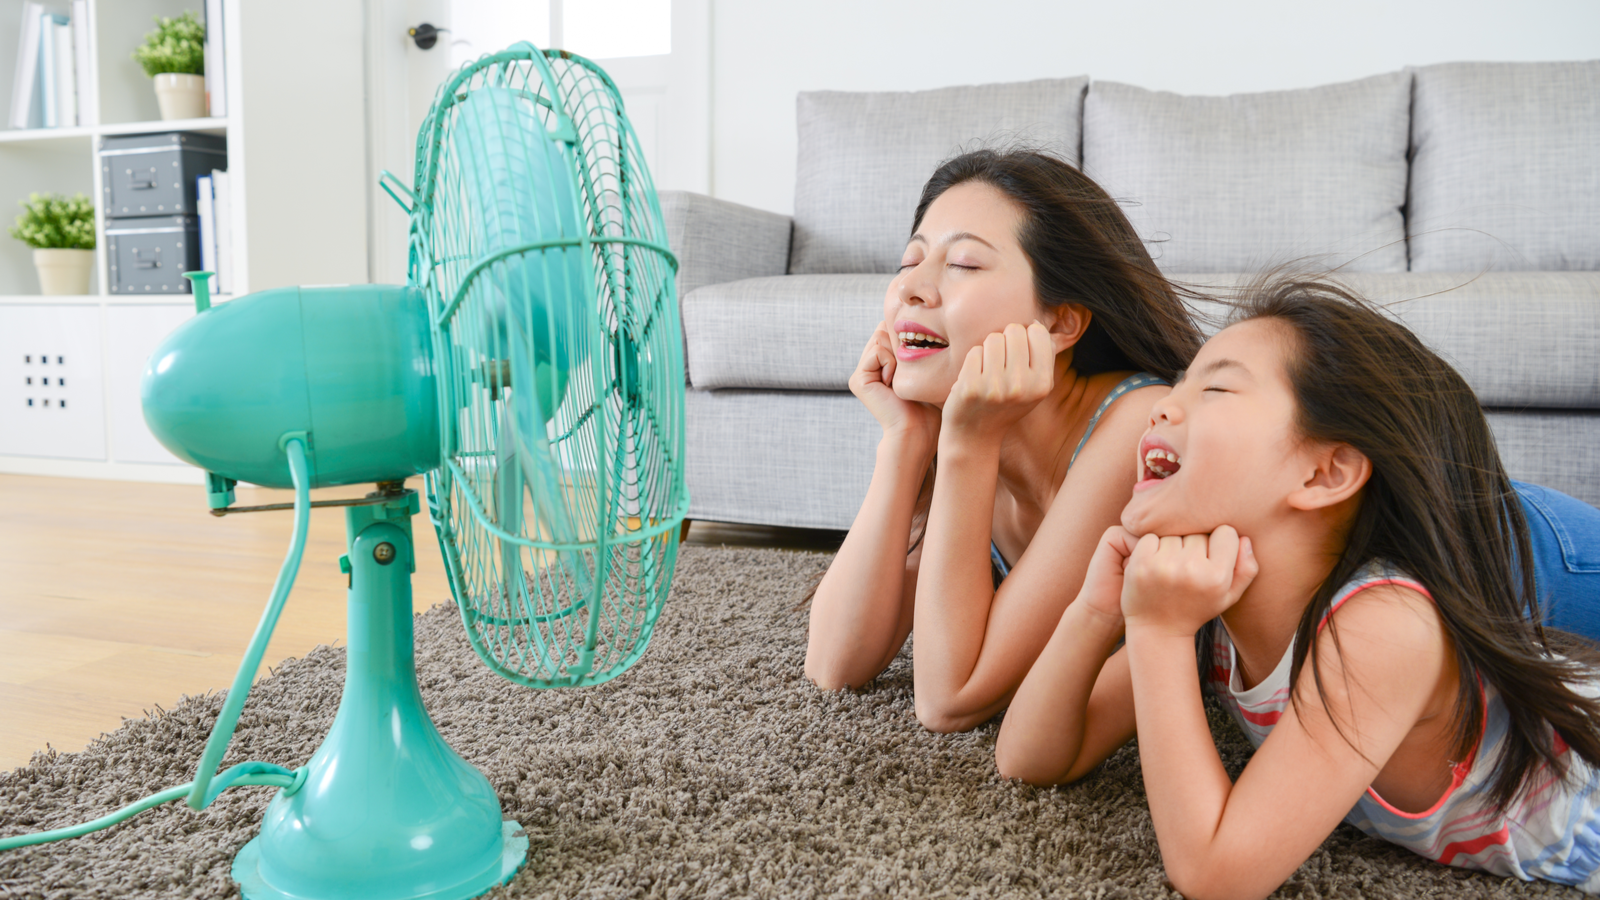 pleasant mother with young daughter lying down in living room floor and facing an electric fan enjoying blowing cool wind together during summer